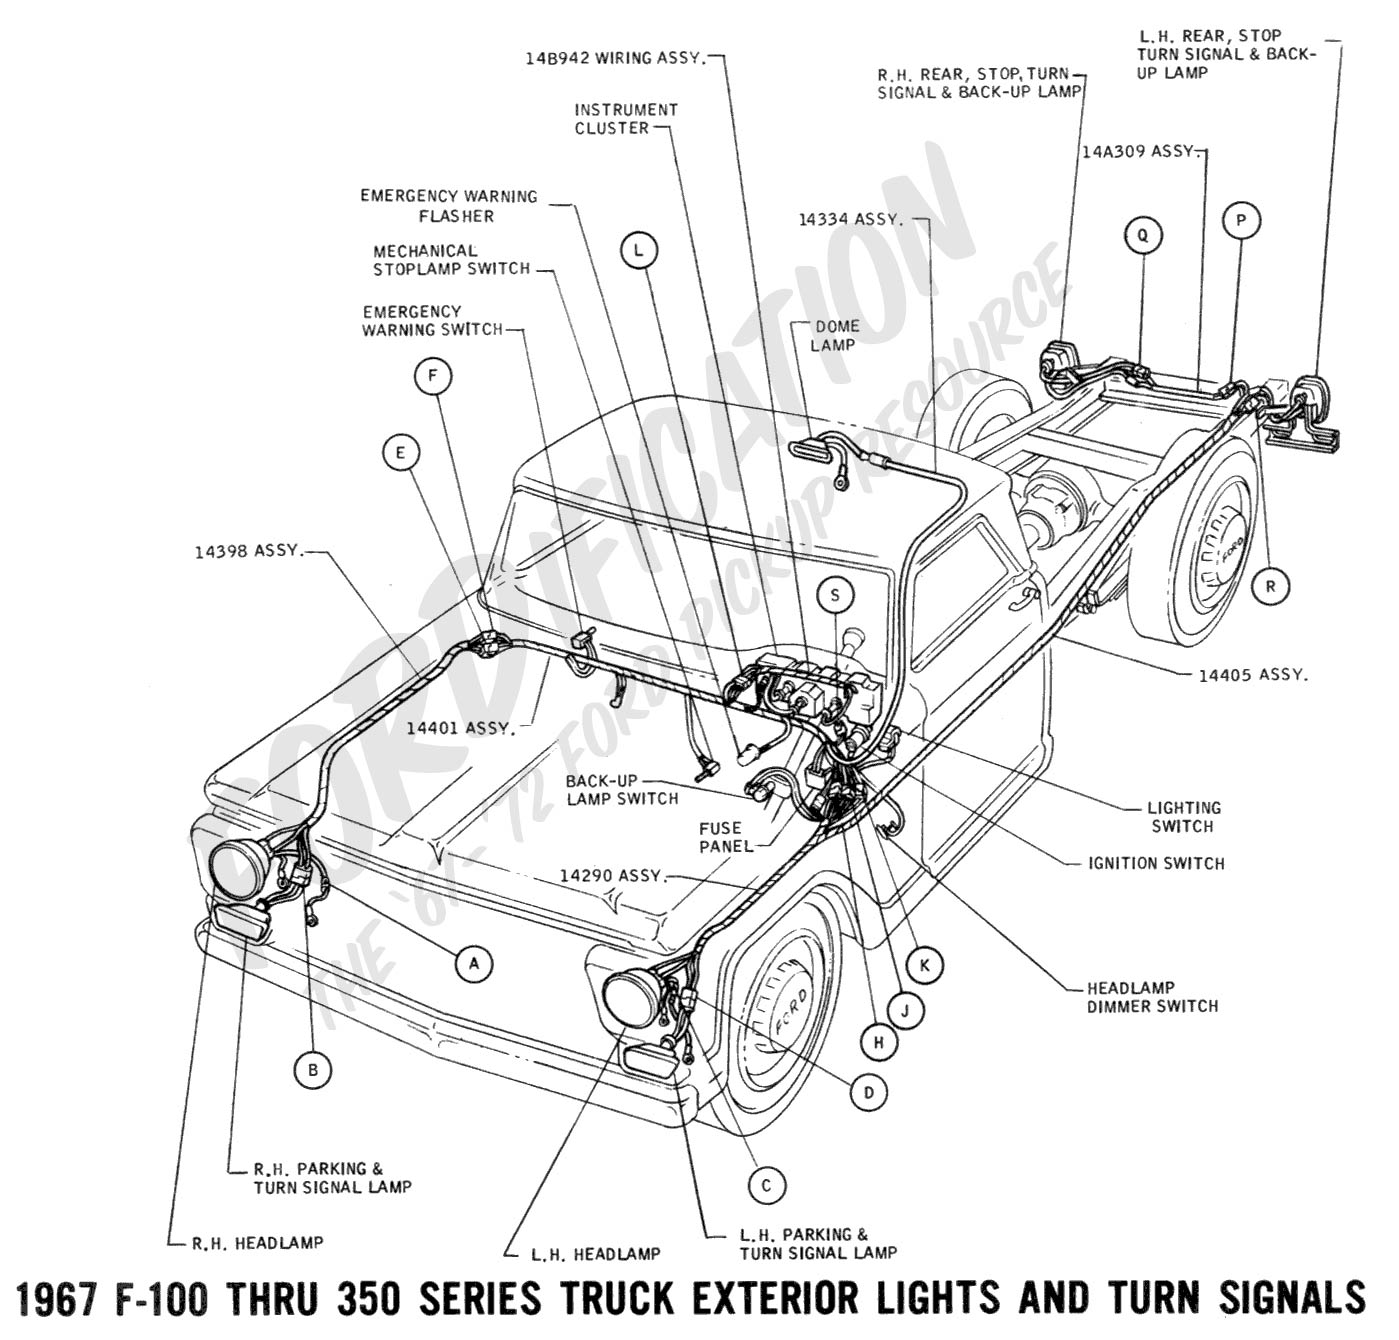 wiring 1967extlights01 ford truck technical drawings and schematics section h wiring wiring diagram for 1985 ford ranger at readyjetset.co